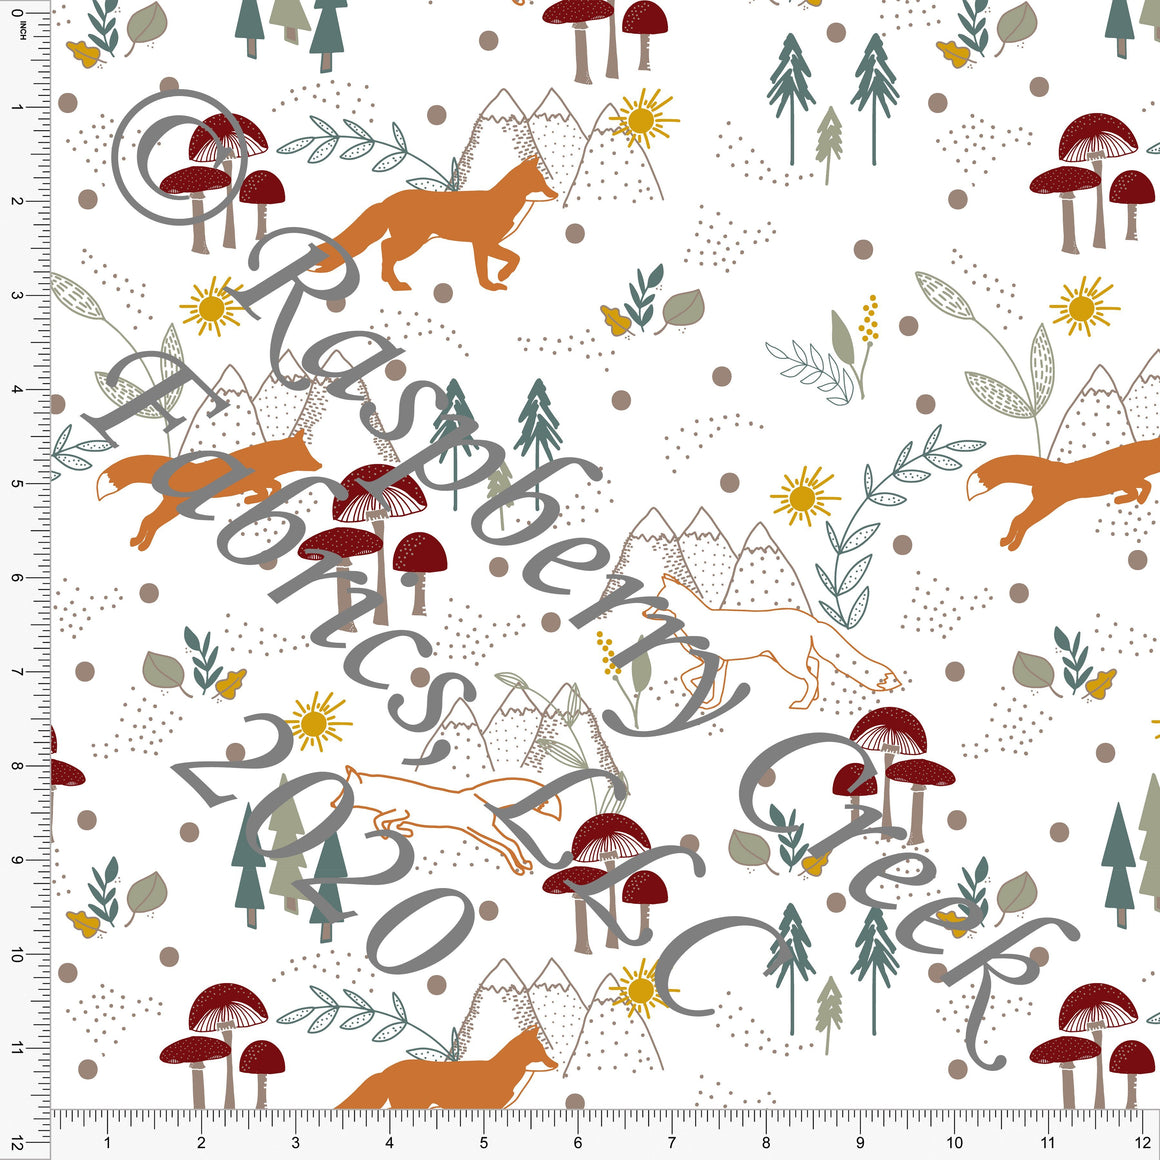 Rust Burgundy Sage and Mustard Fox Mountain and Mushrooms, Daisy Fox by Kimberly Henrie for Club Fabrics - Raspberry Creek Fabrics